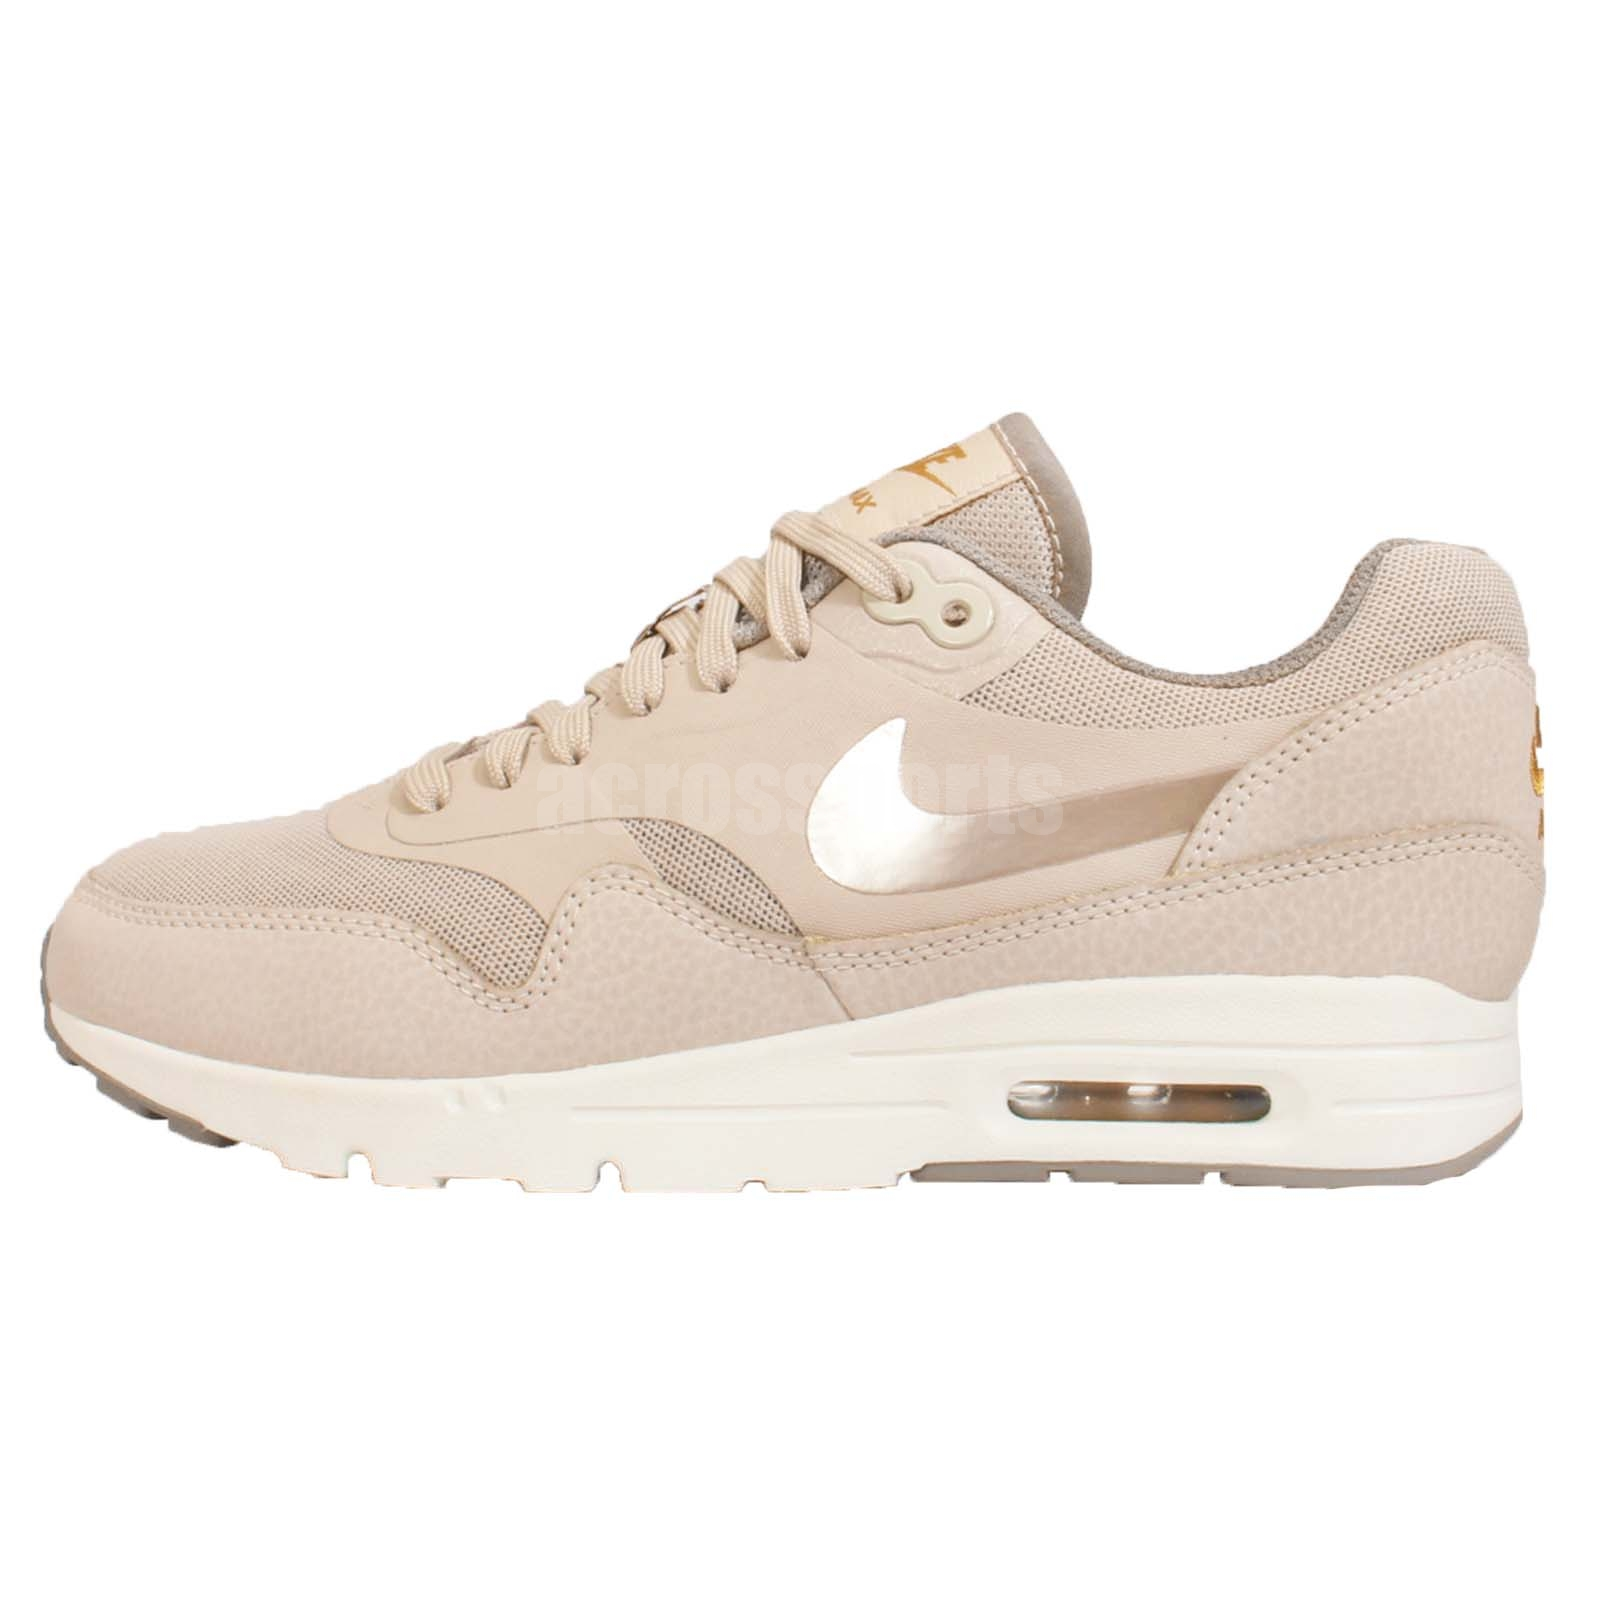 wmns nike air max 1 ultra essential string gold womens. Black Bedroom Furniture Sets. Home Design Ideas